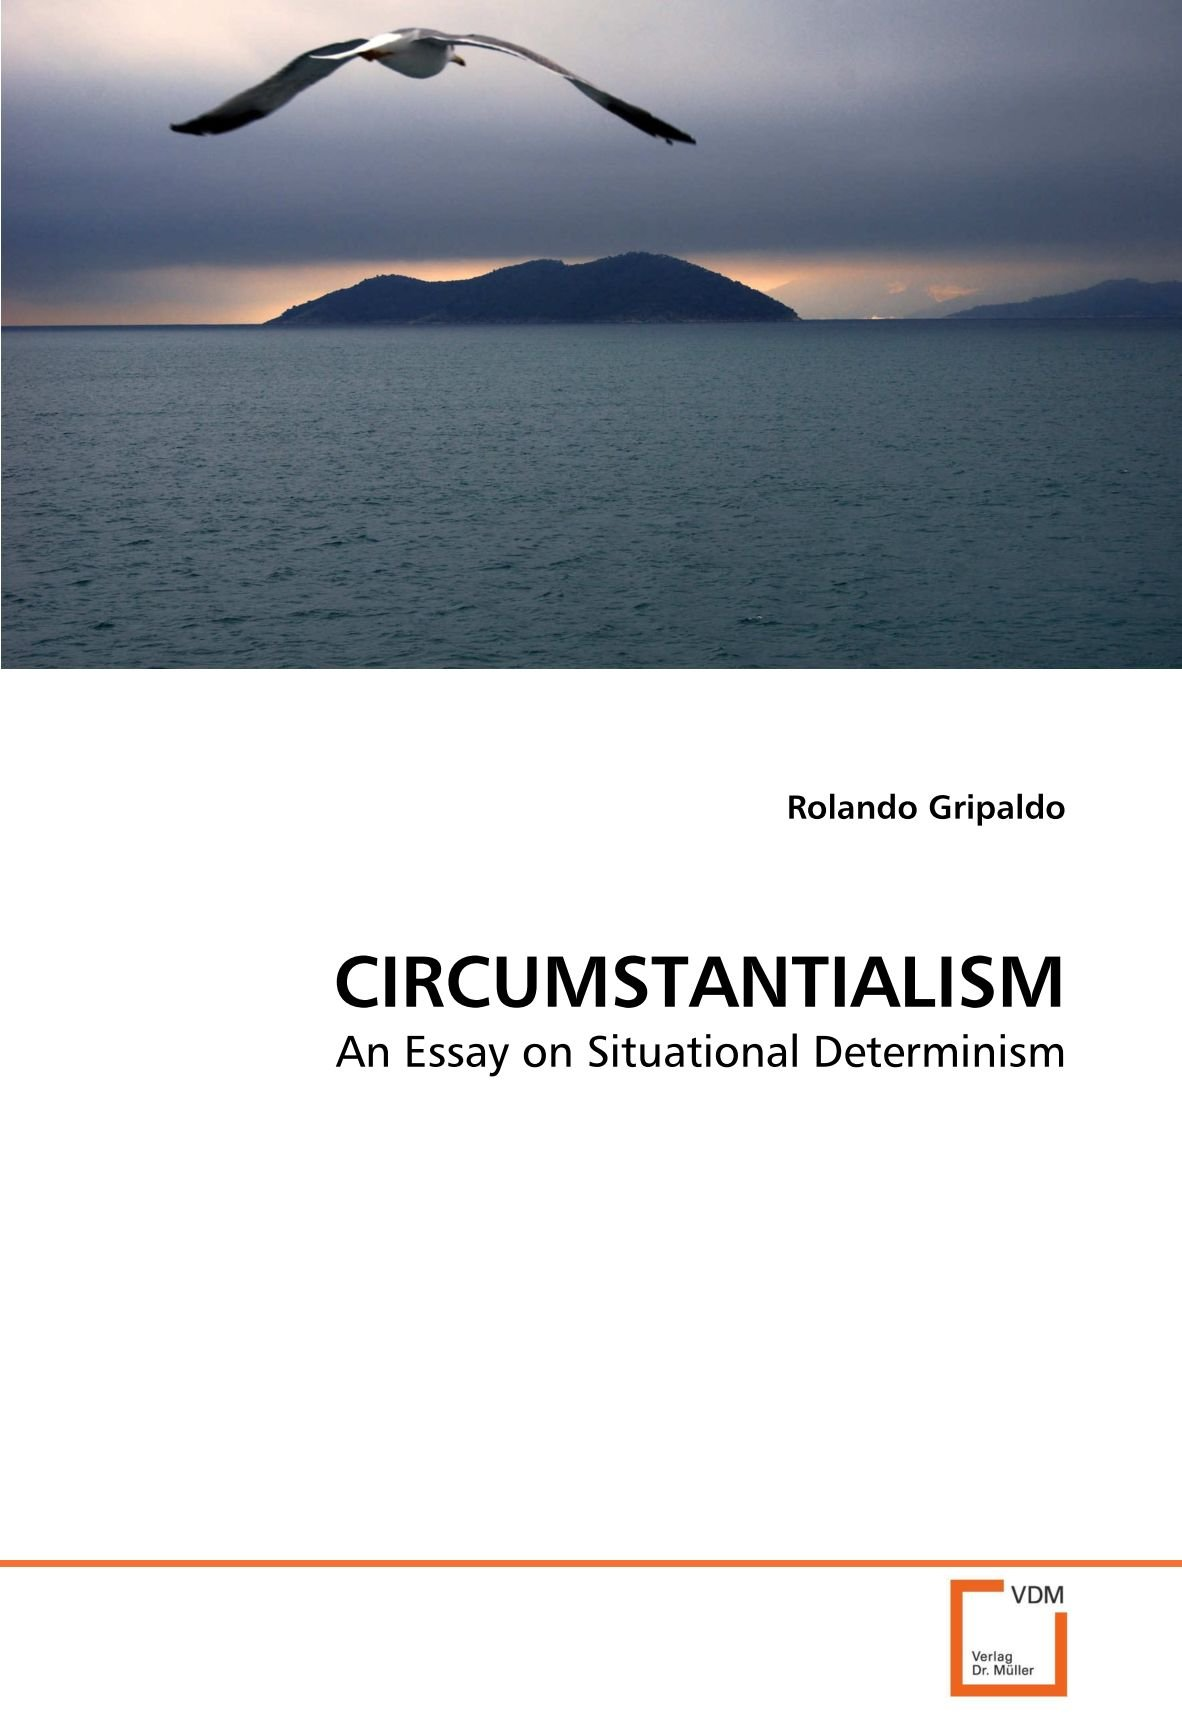 circumstantialism an essay on situational determinism rolando circumstantialism an essay on situational determinism rolando gripaldo 9783639328868 amazon com books